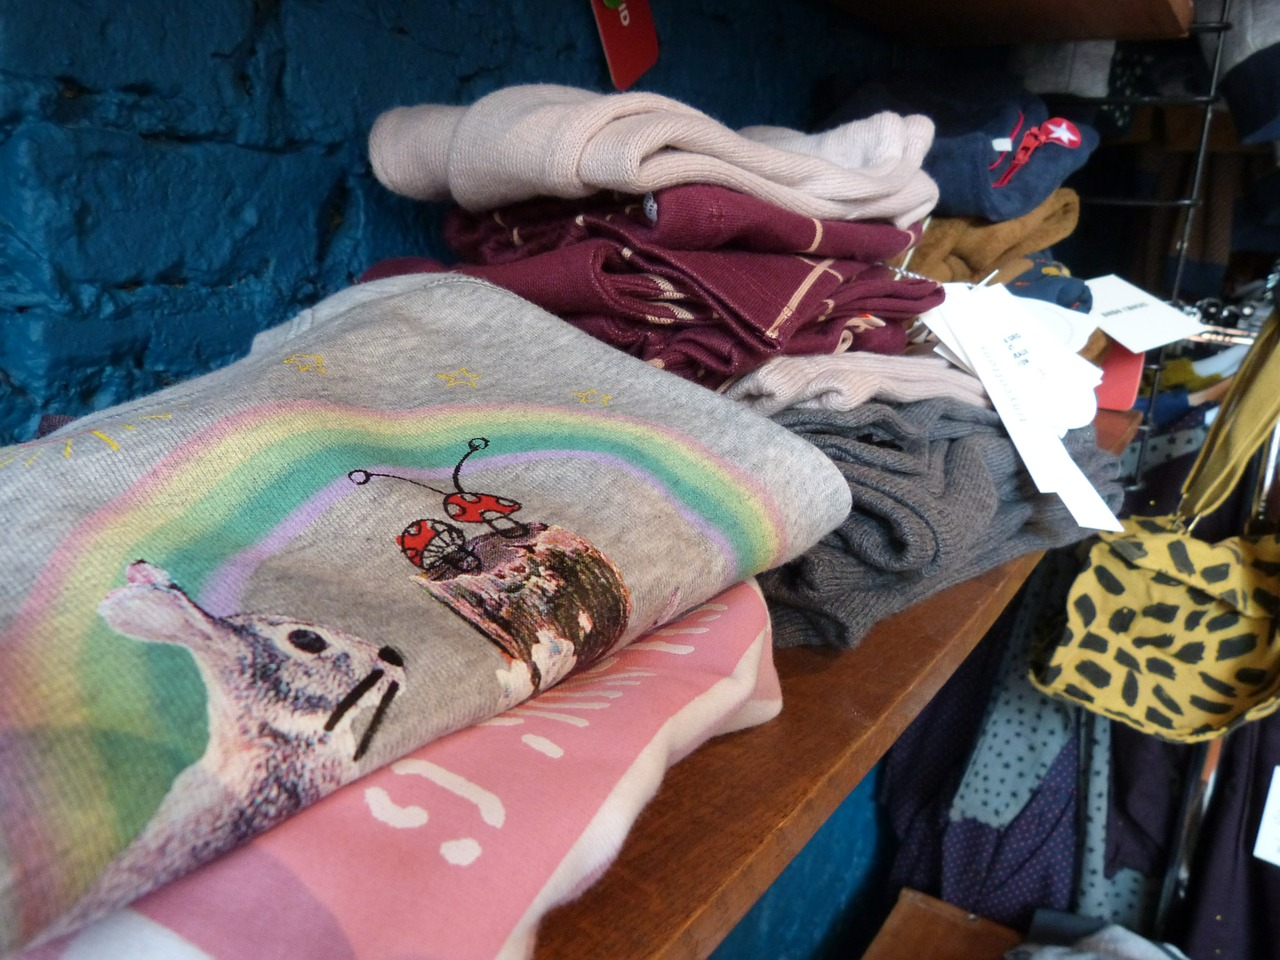 Affordable Children's Clothing